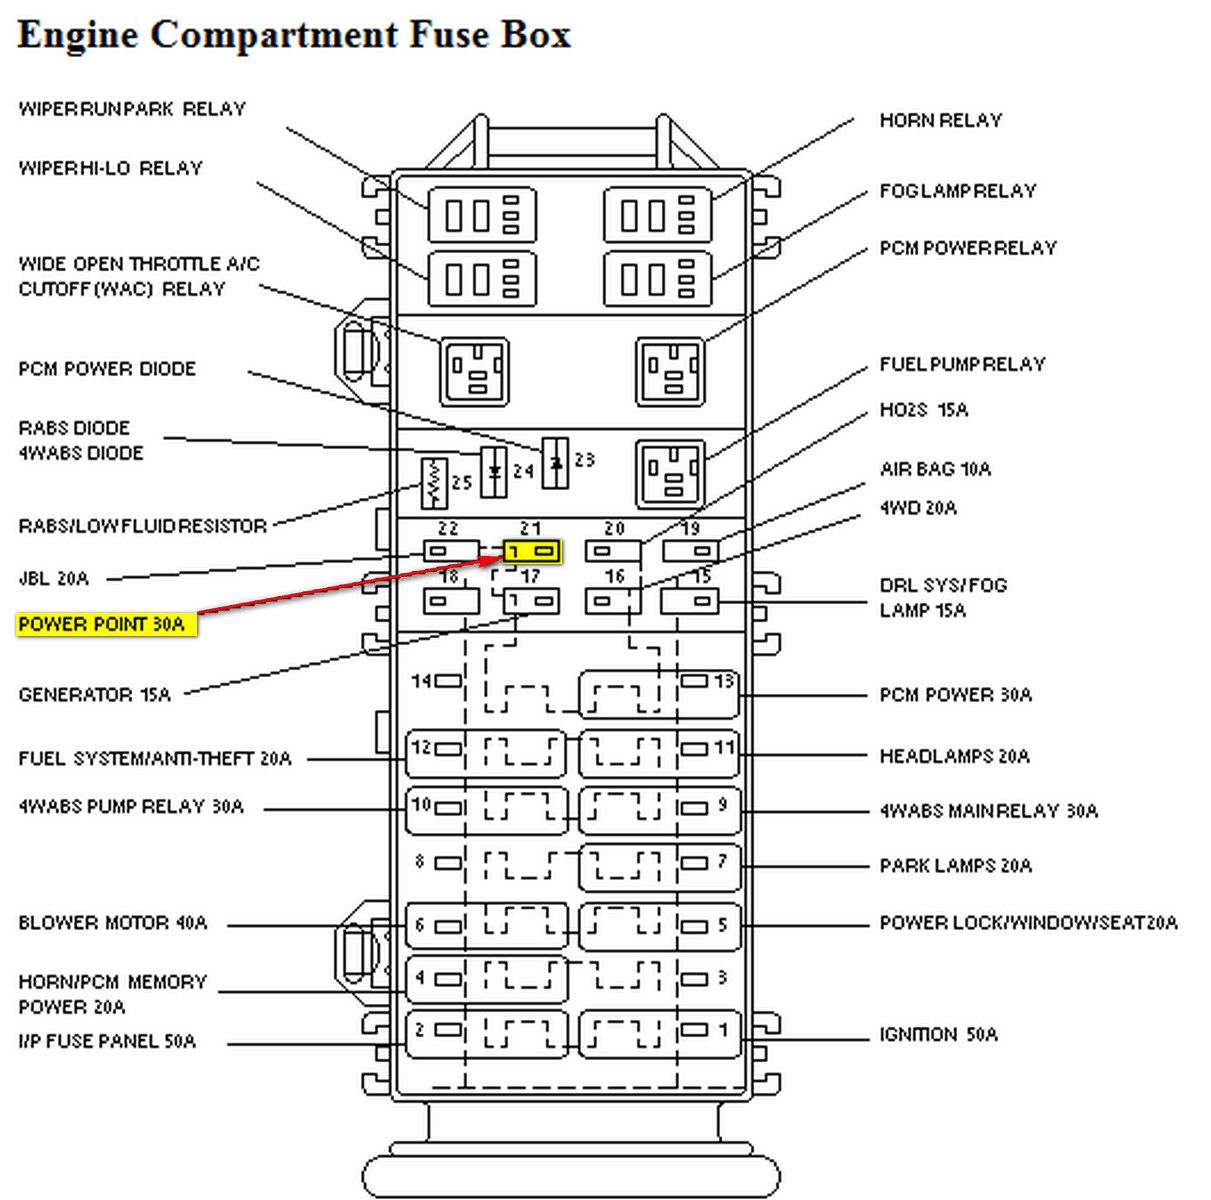 hight resolution of 1997 ford ranger fuse box diagram truck part diagrams ford ranger rh pinterest com ford ranger